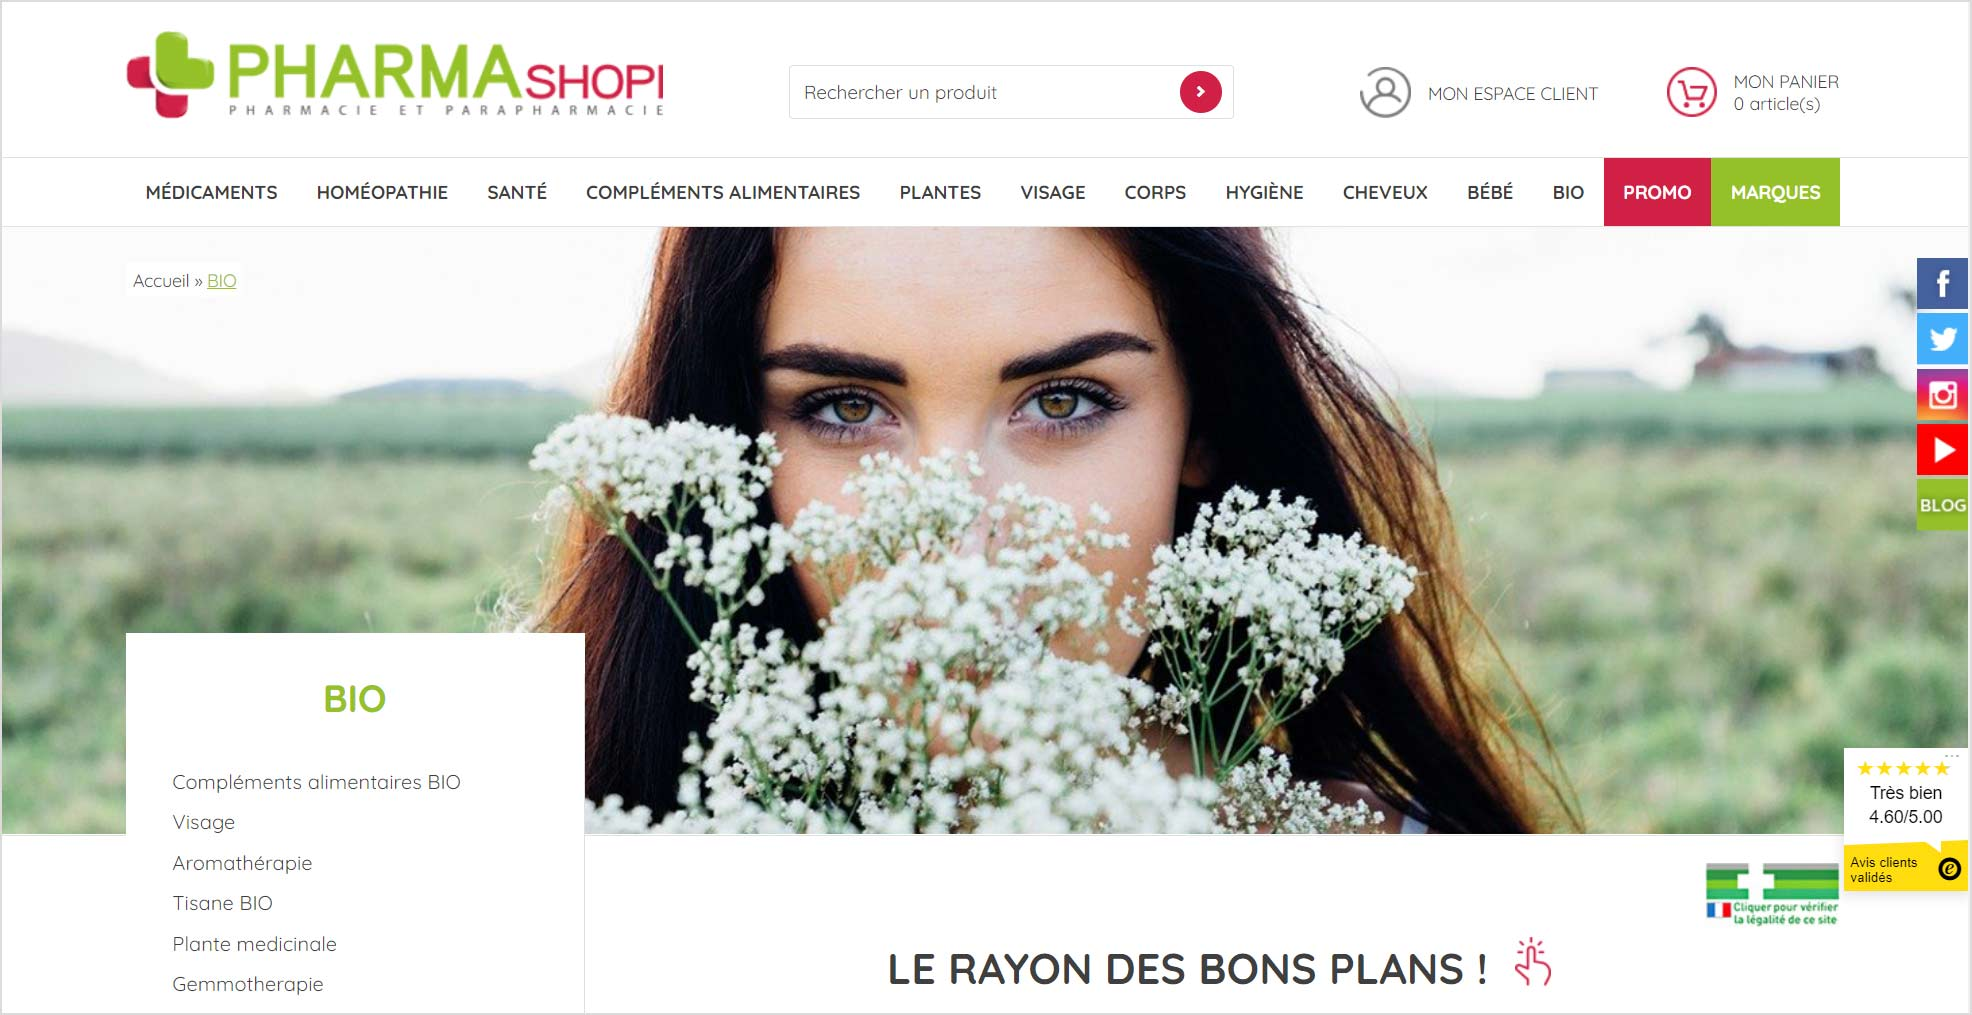 Pharmashopi : Boutique en ligne par Shop Application ayant active le module Trusted Shops pour la gestion de ses avis clients